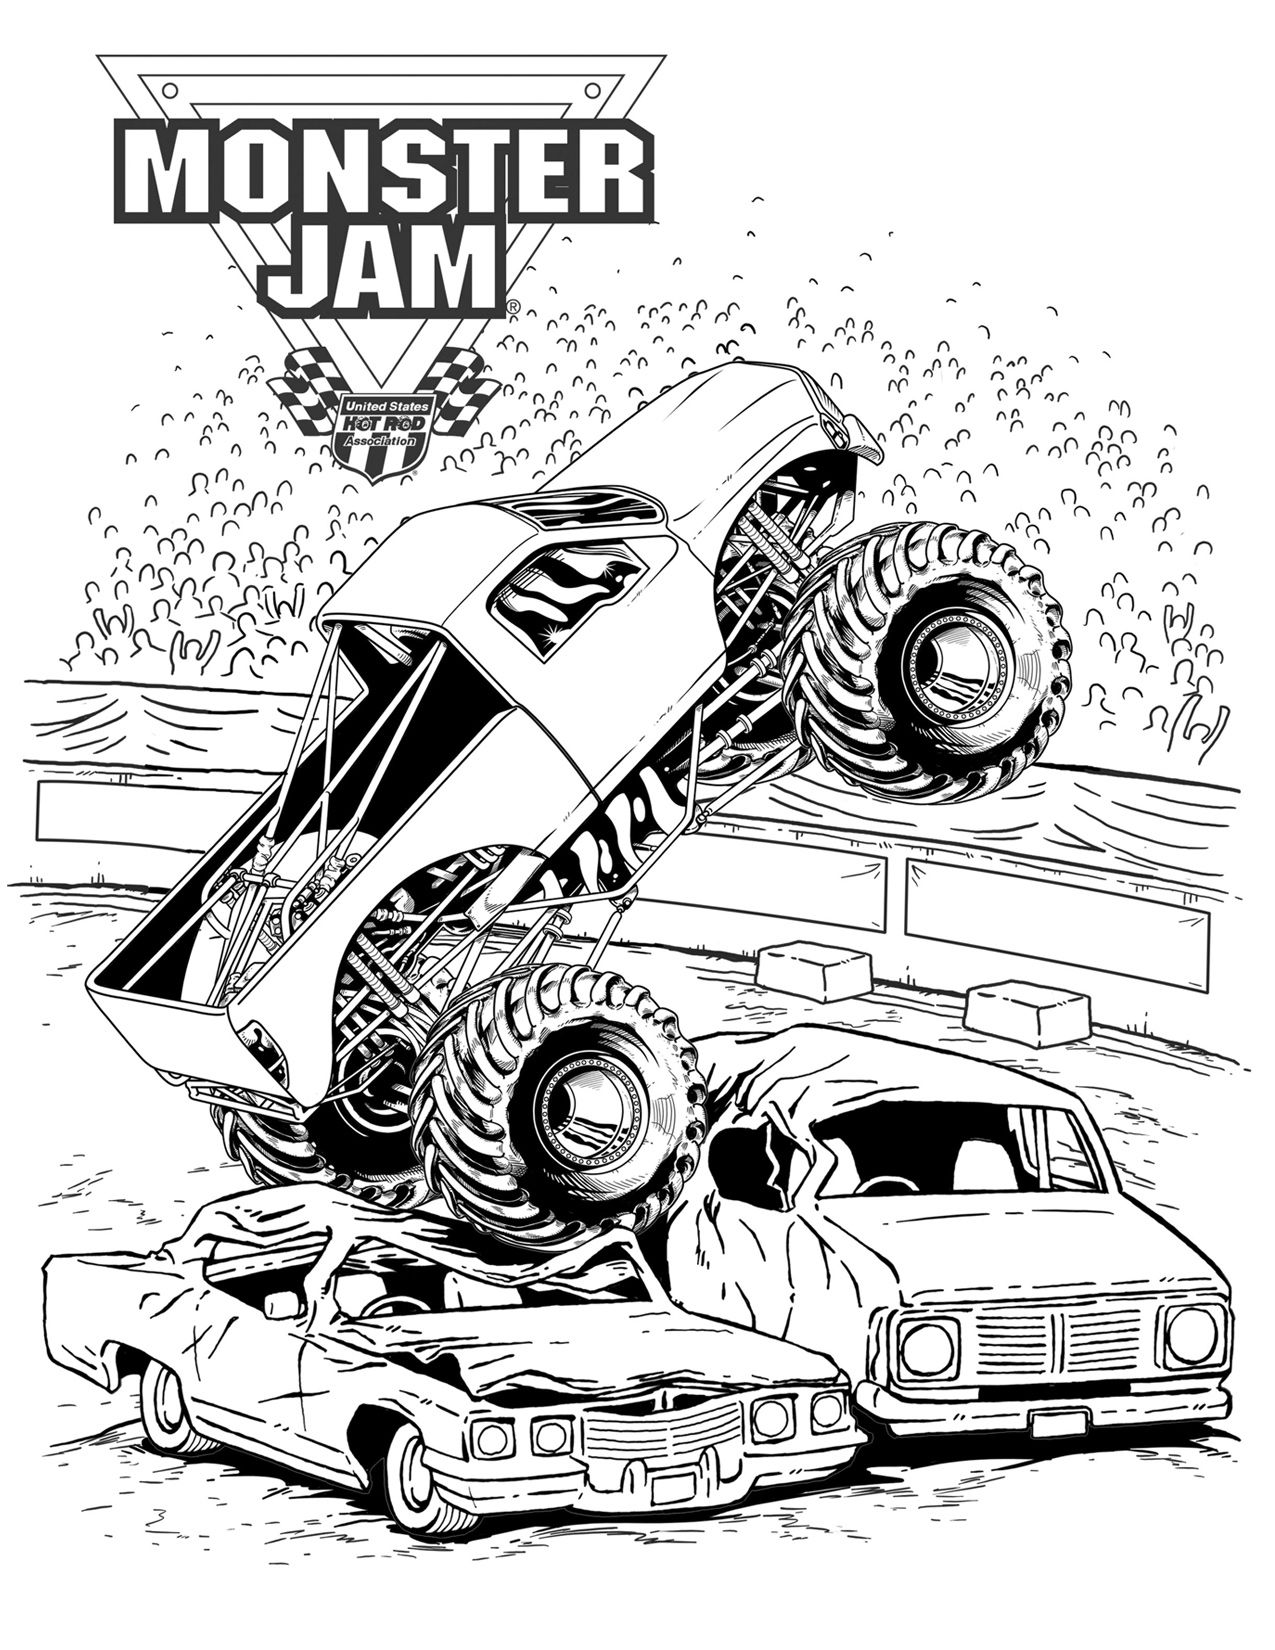 monster truck coloring pages http://www.monsterjam.com/kidszone ...